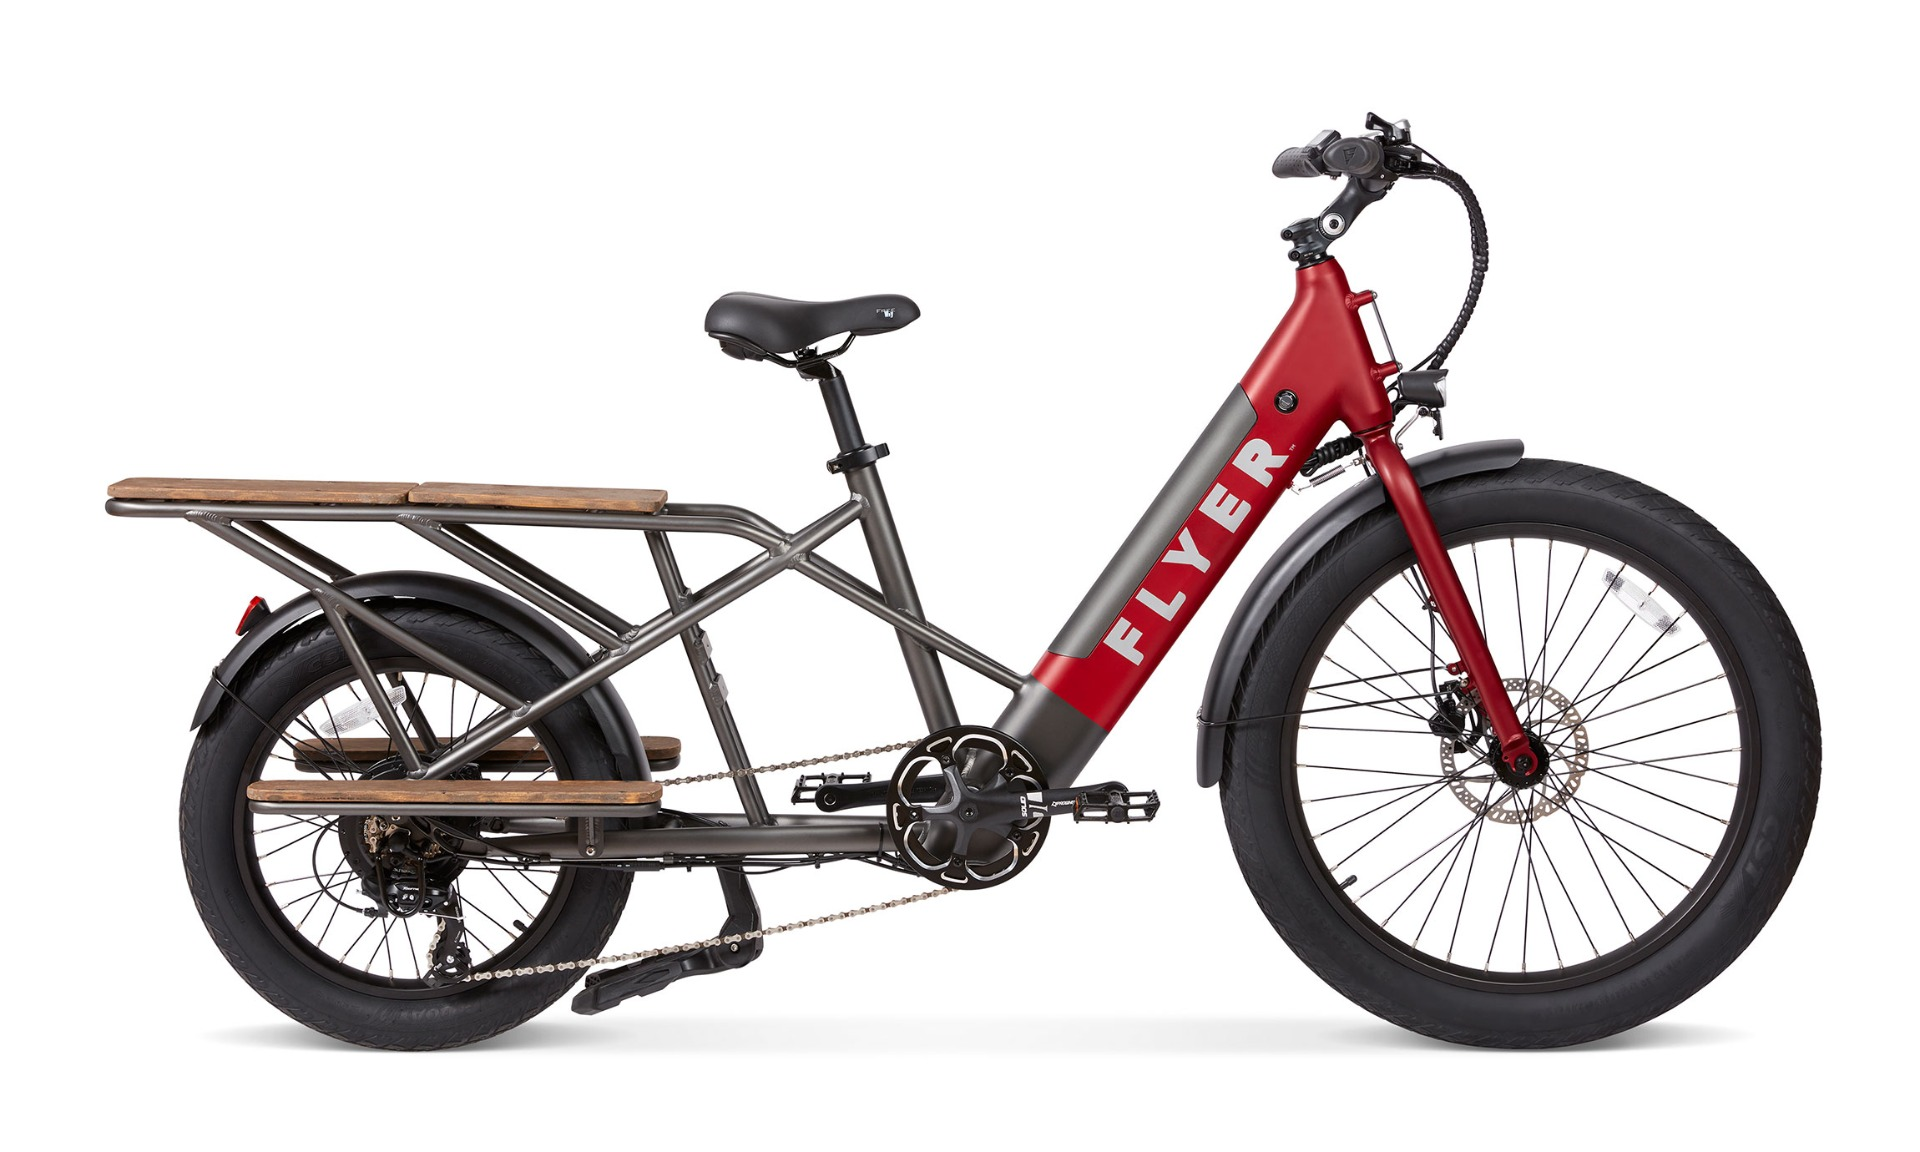 Flyer L885 red electric cargo bike